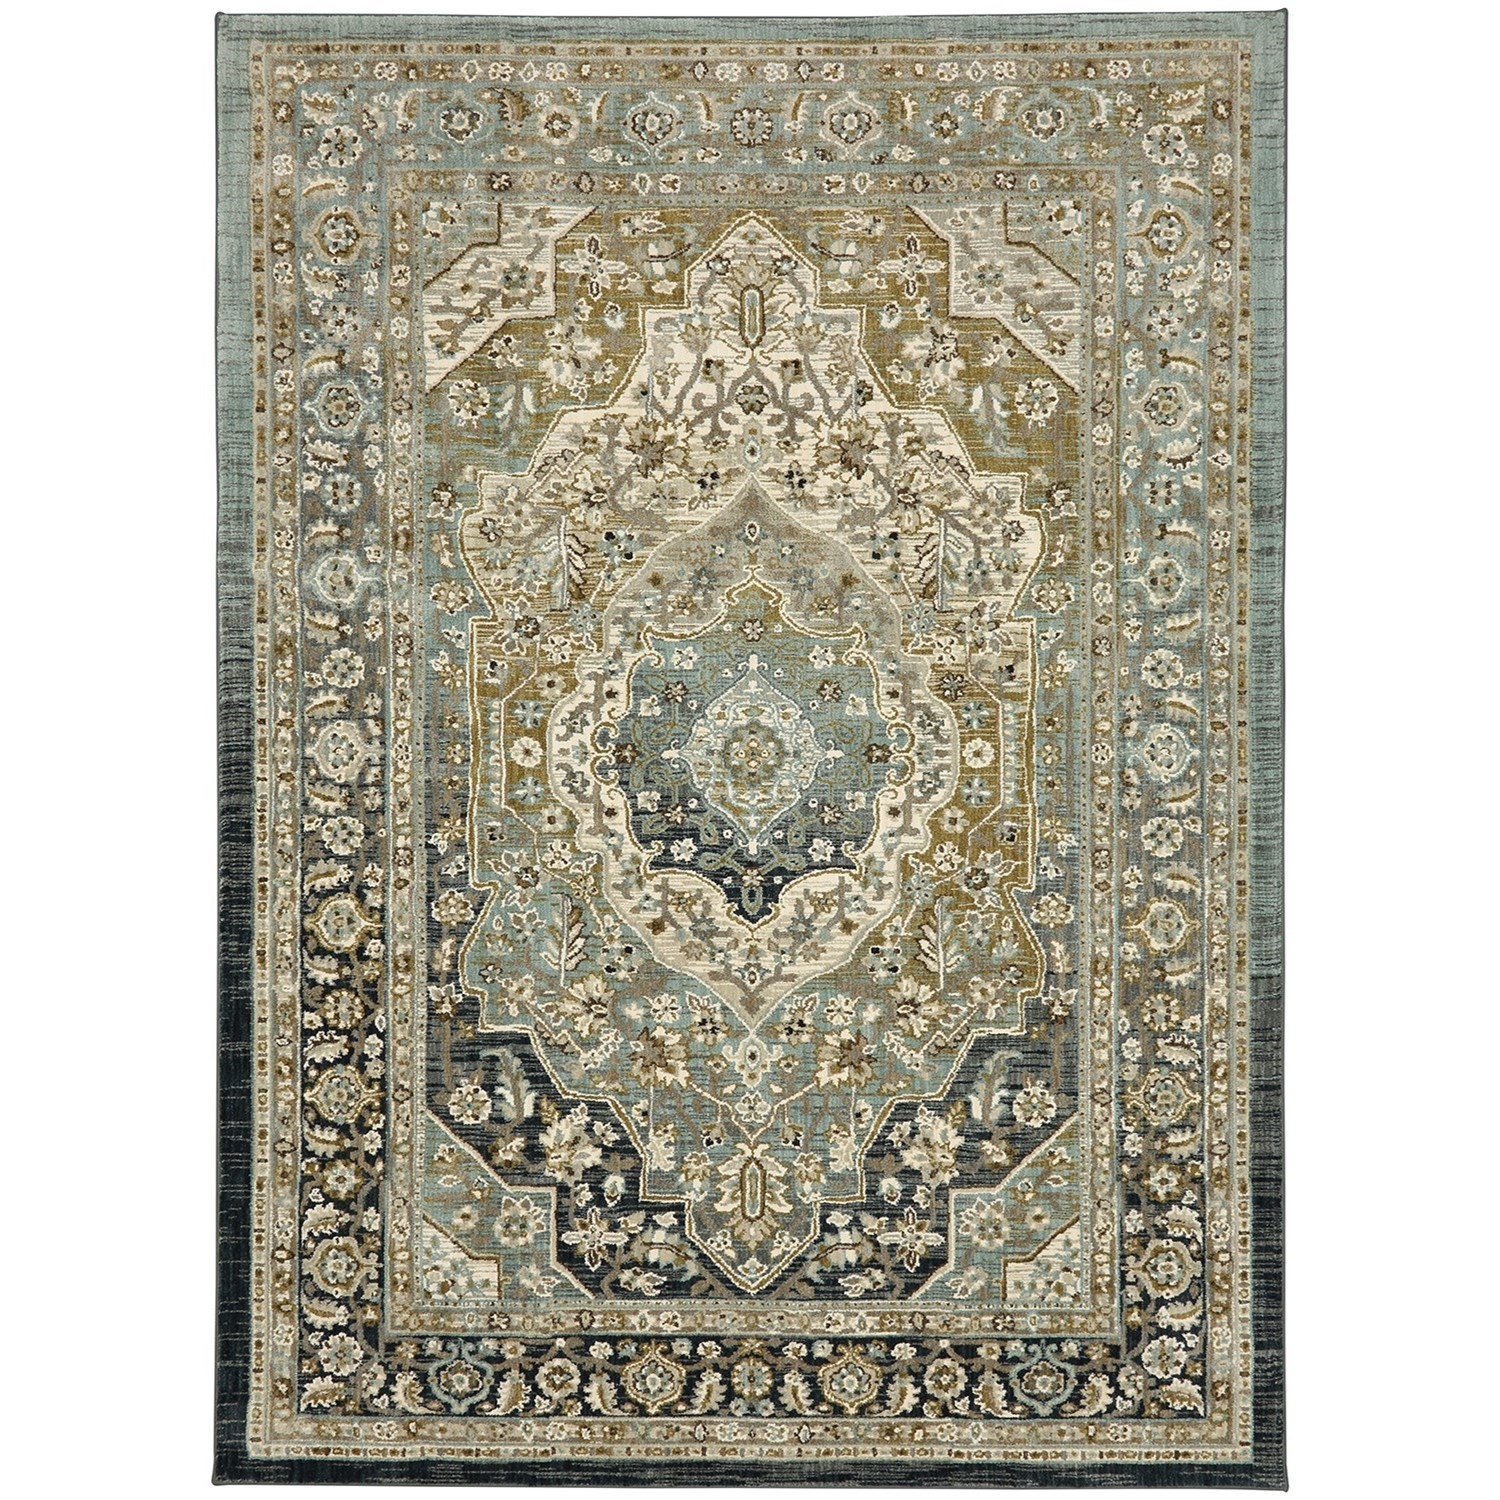 """Touchstone 5' 3""""x7' 10"""" Rectangle Ornamental Area Rug by Karastan Rugs at Darvin Furniture"""